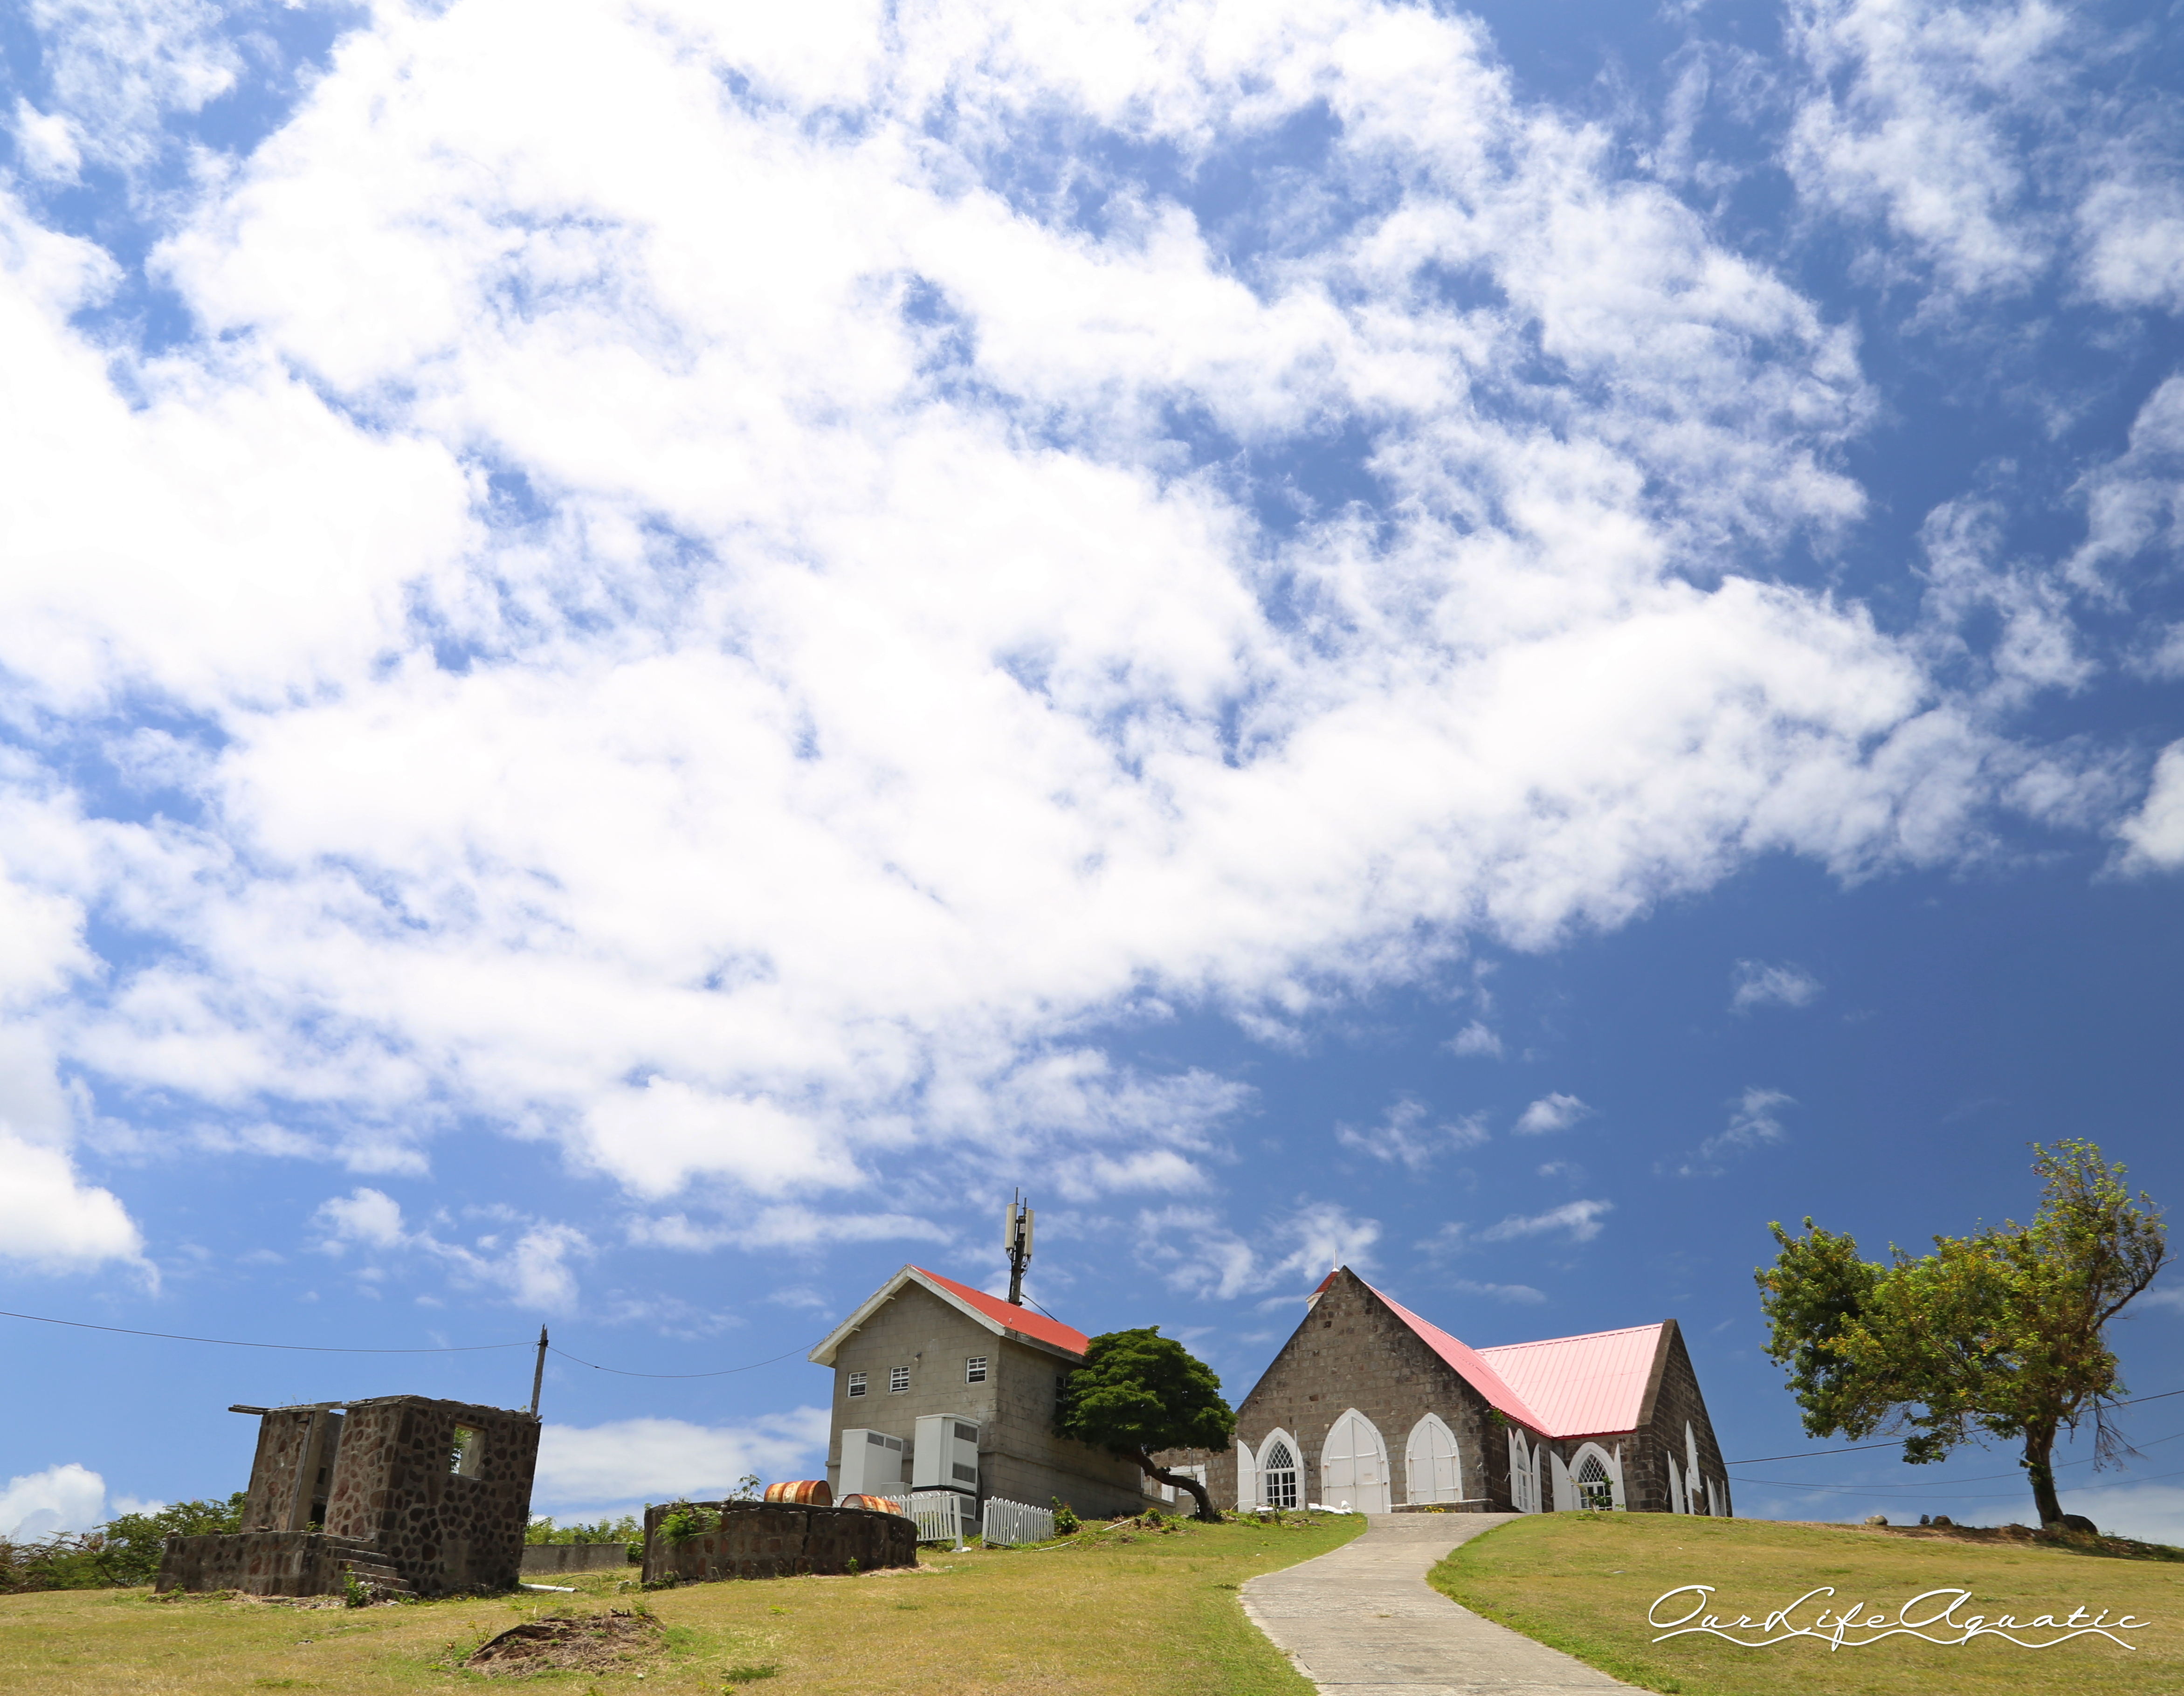 Built in 1643, St. Thomas' Lowland Church was the first Anglican Church in the Caribbean